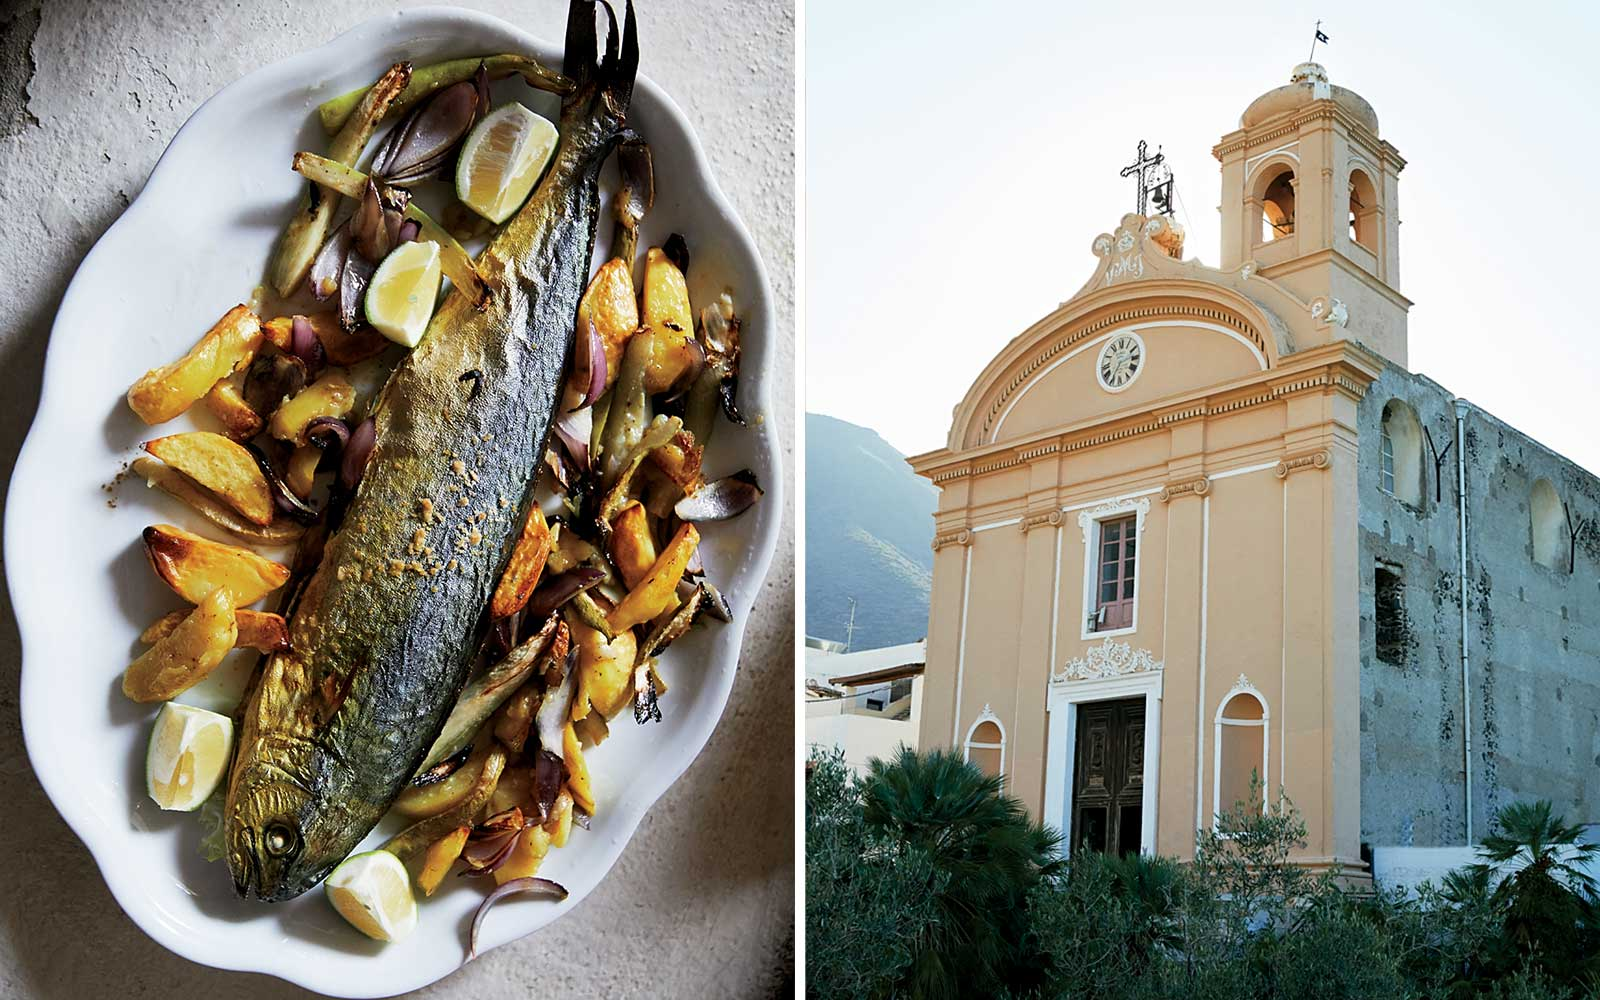 Grilled fish and a Salina church, in Italy's Aeolian Islands